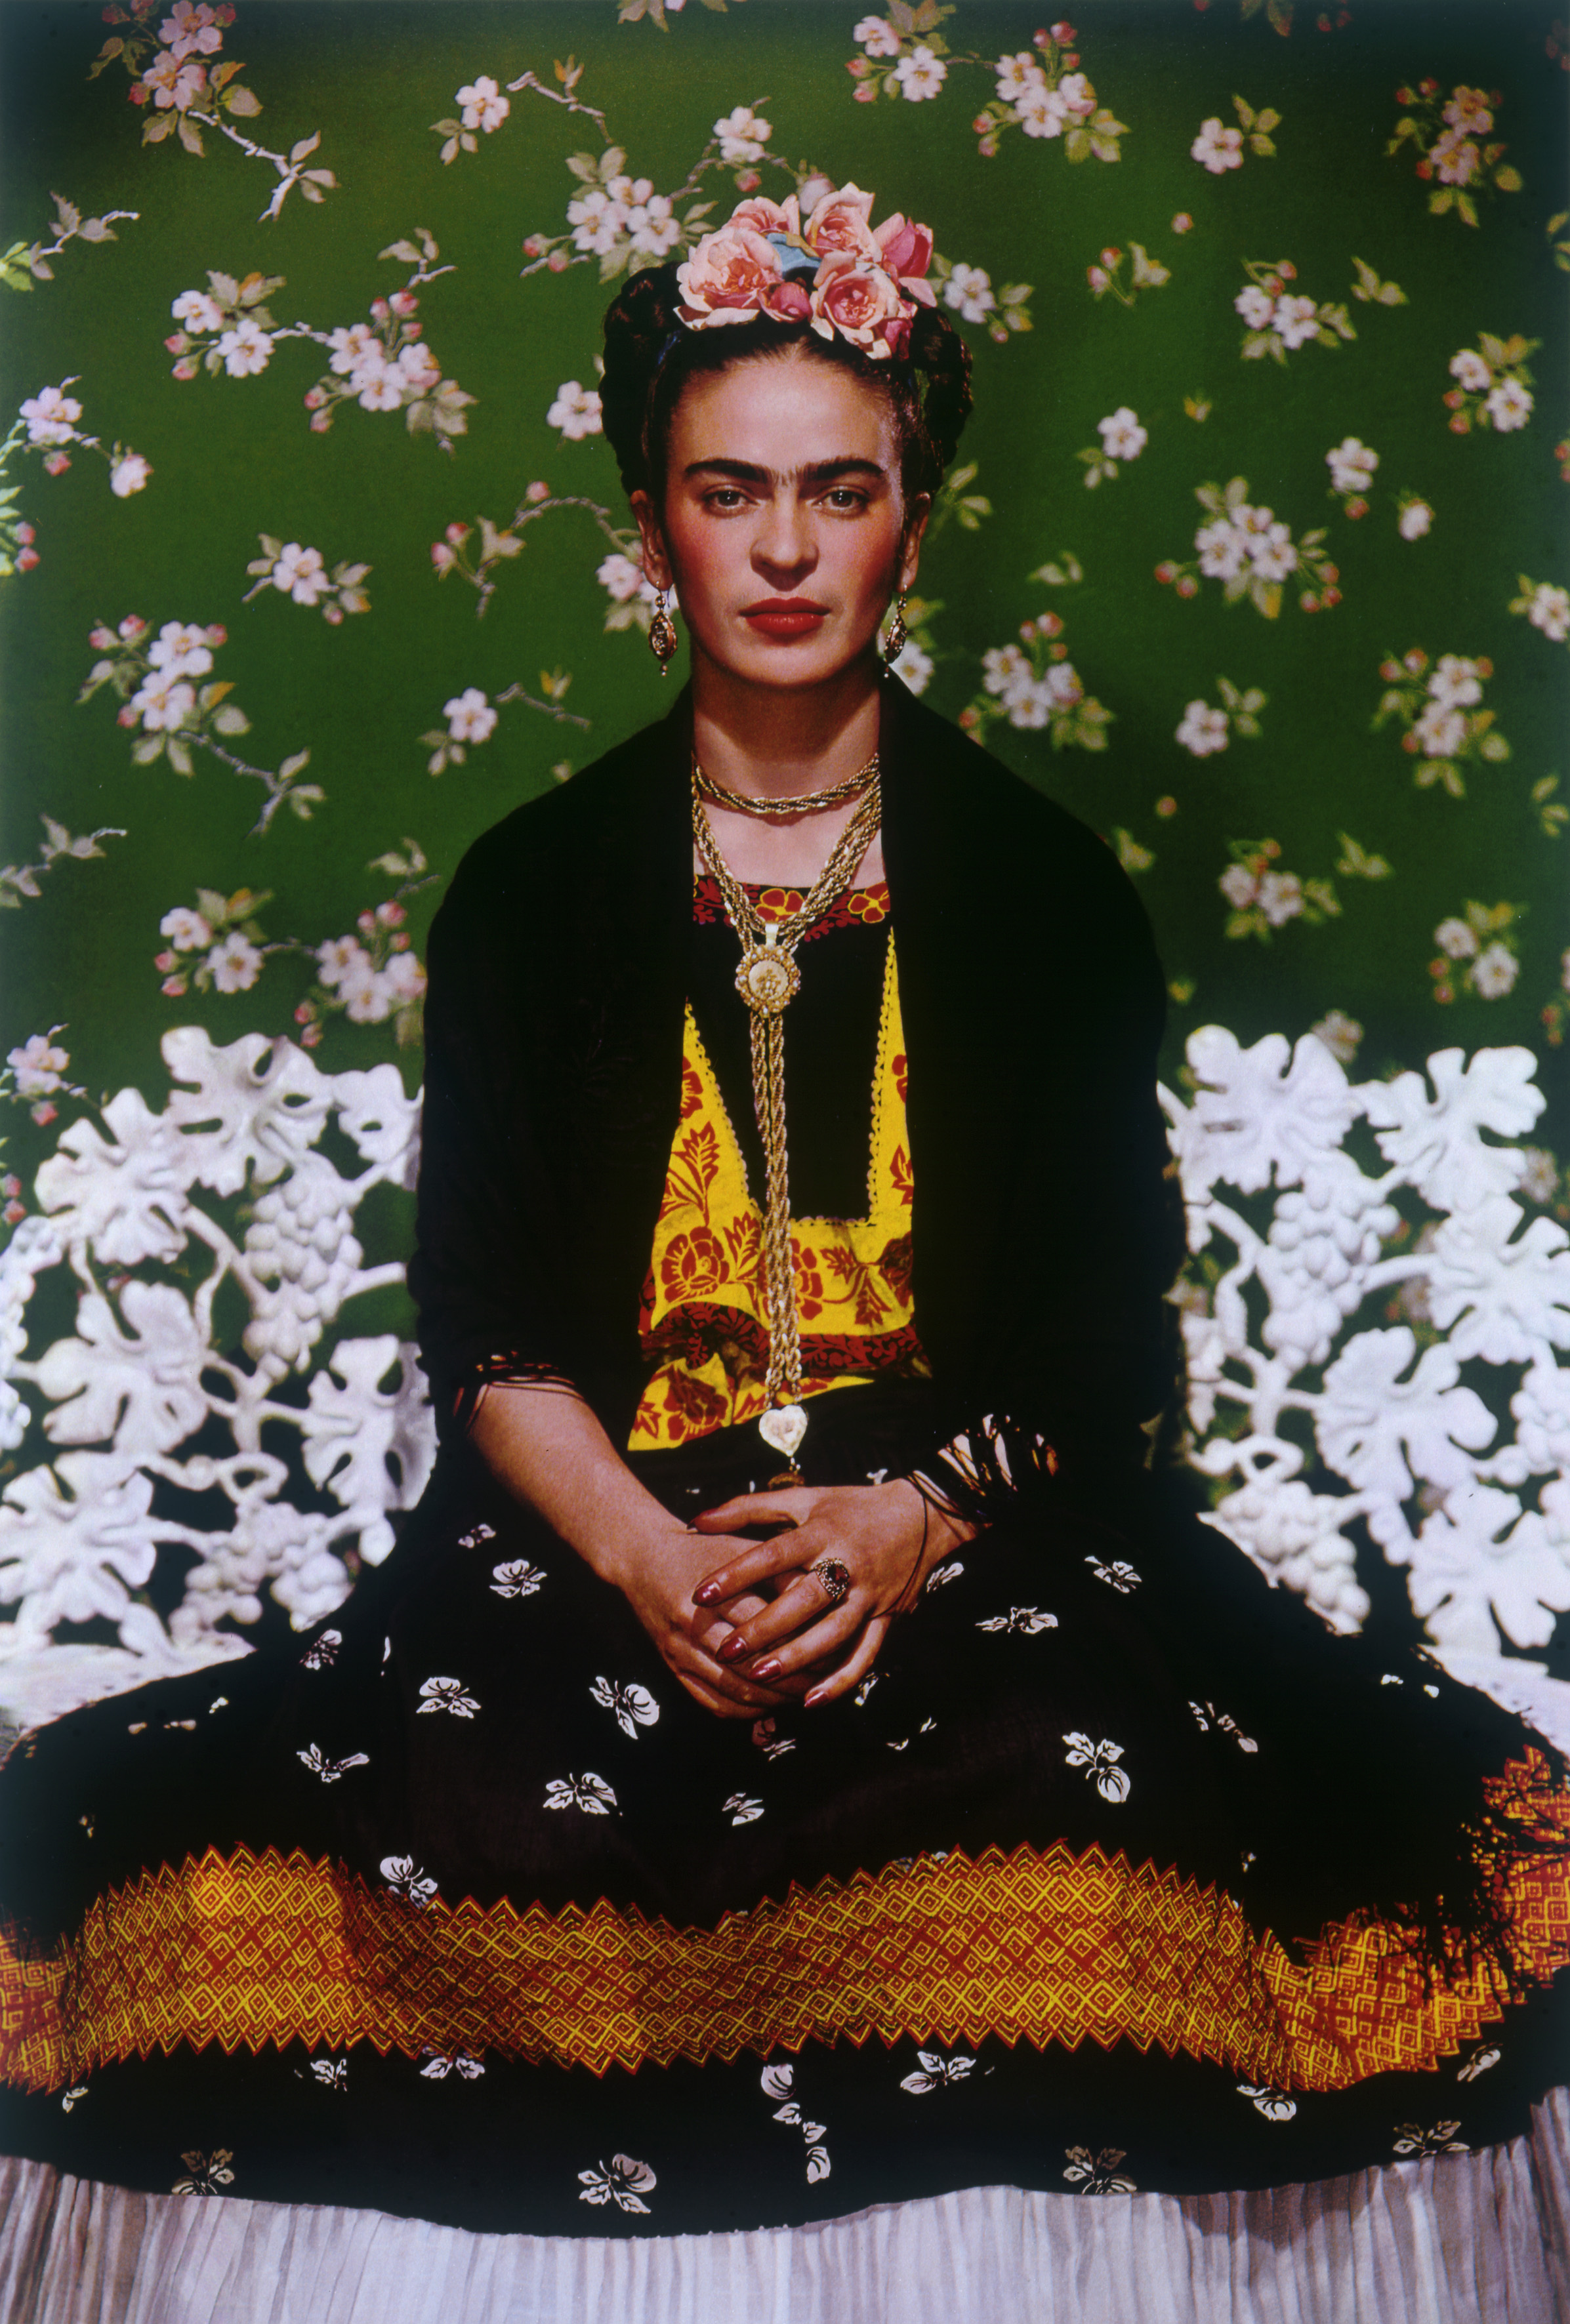 Nickolas Muray, Frida On White Bench #5, 1939